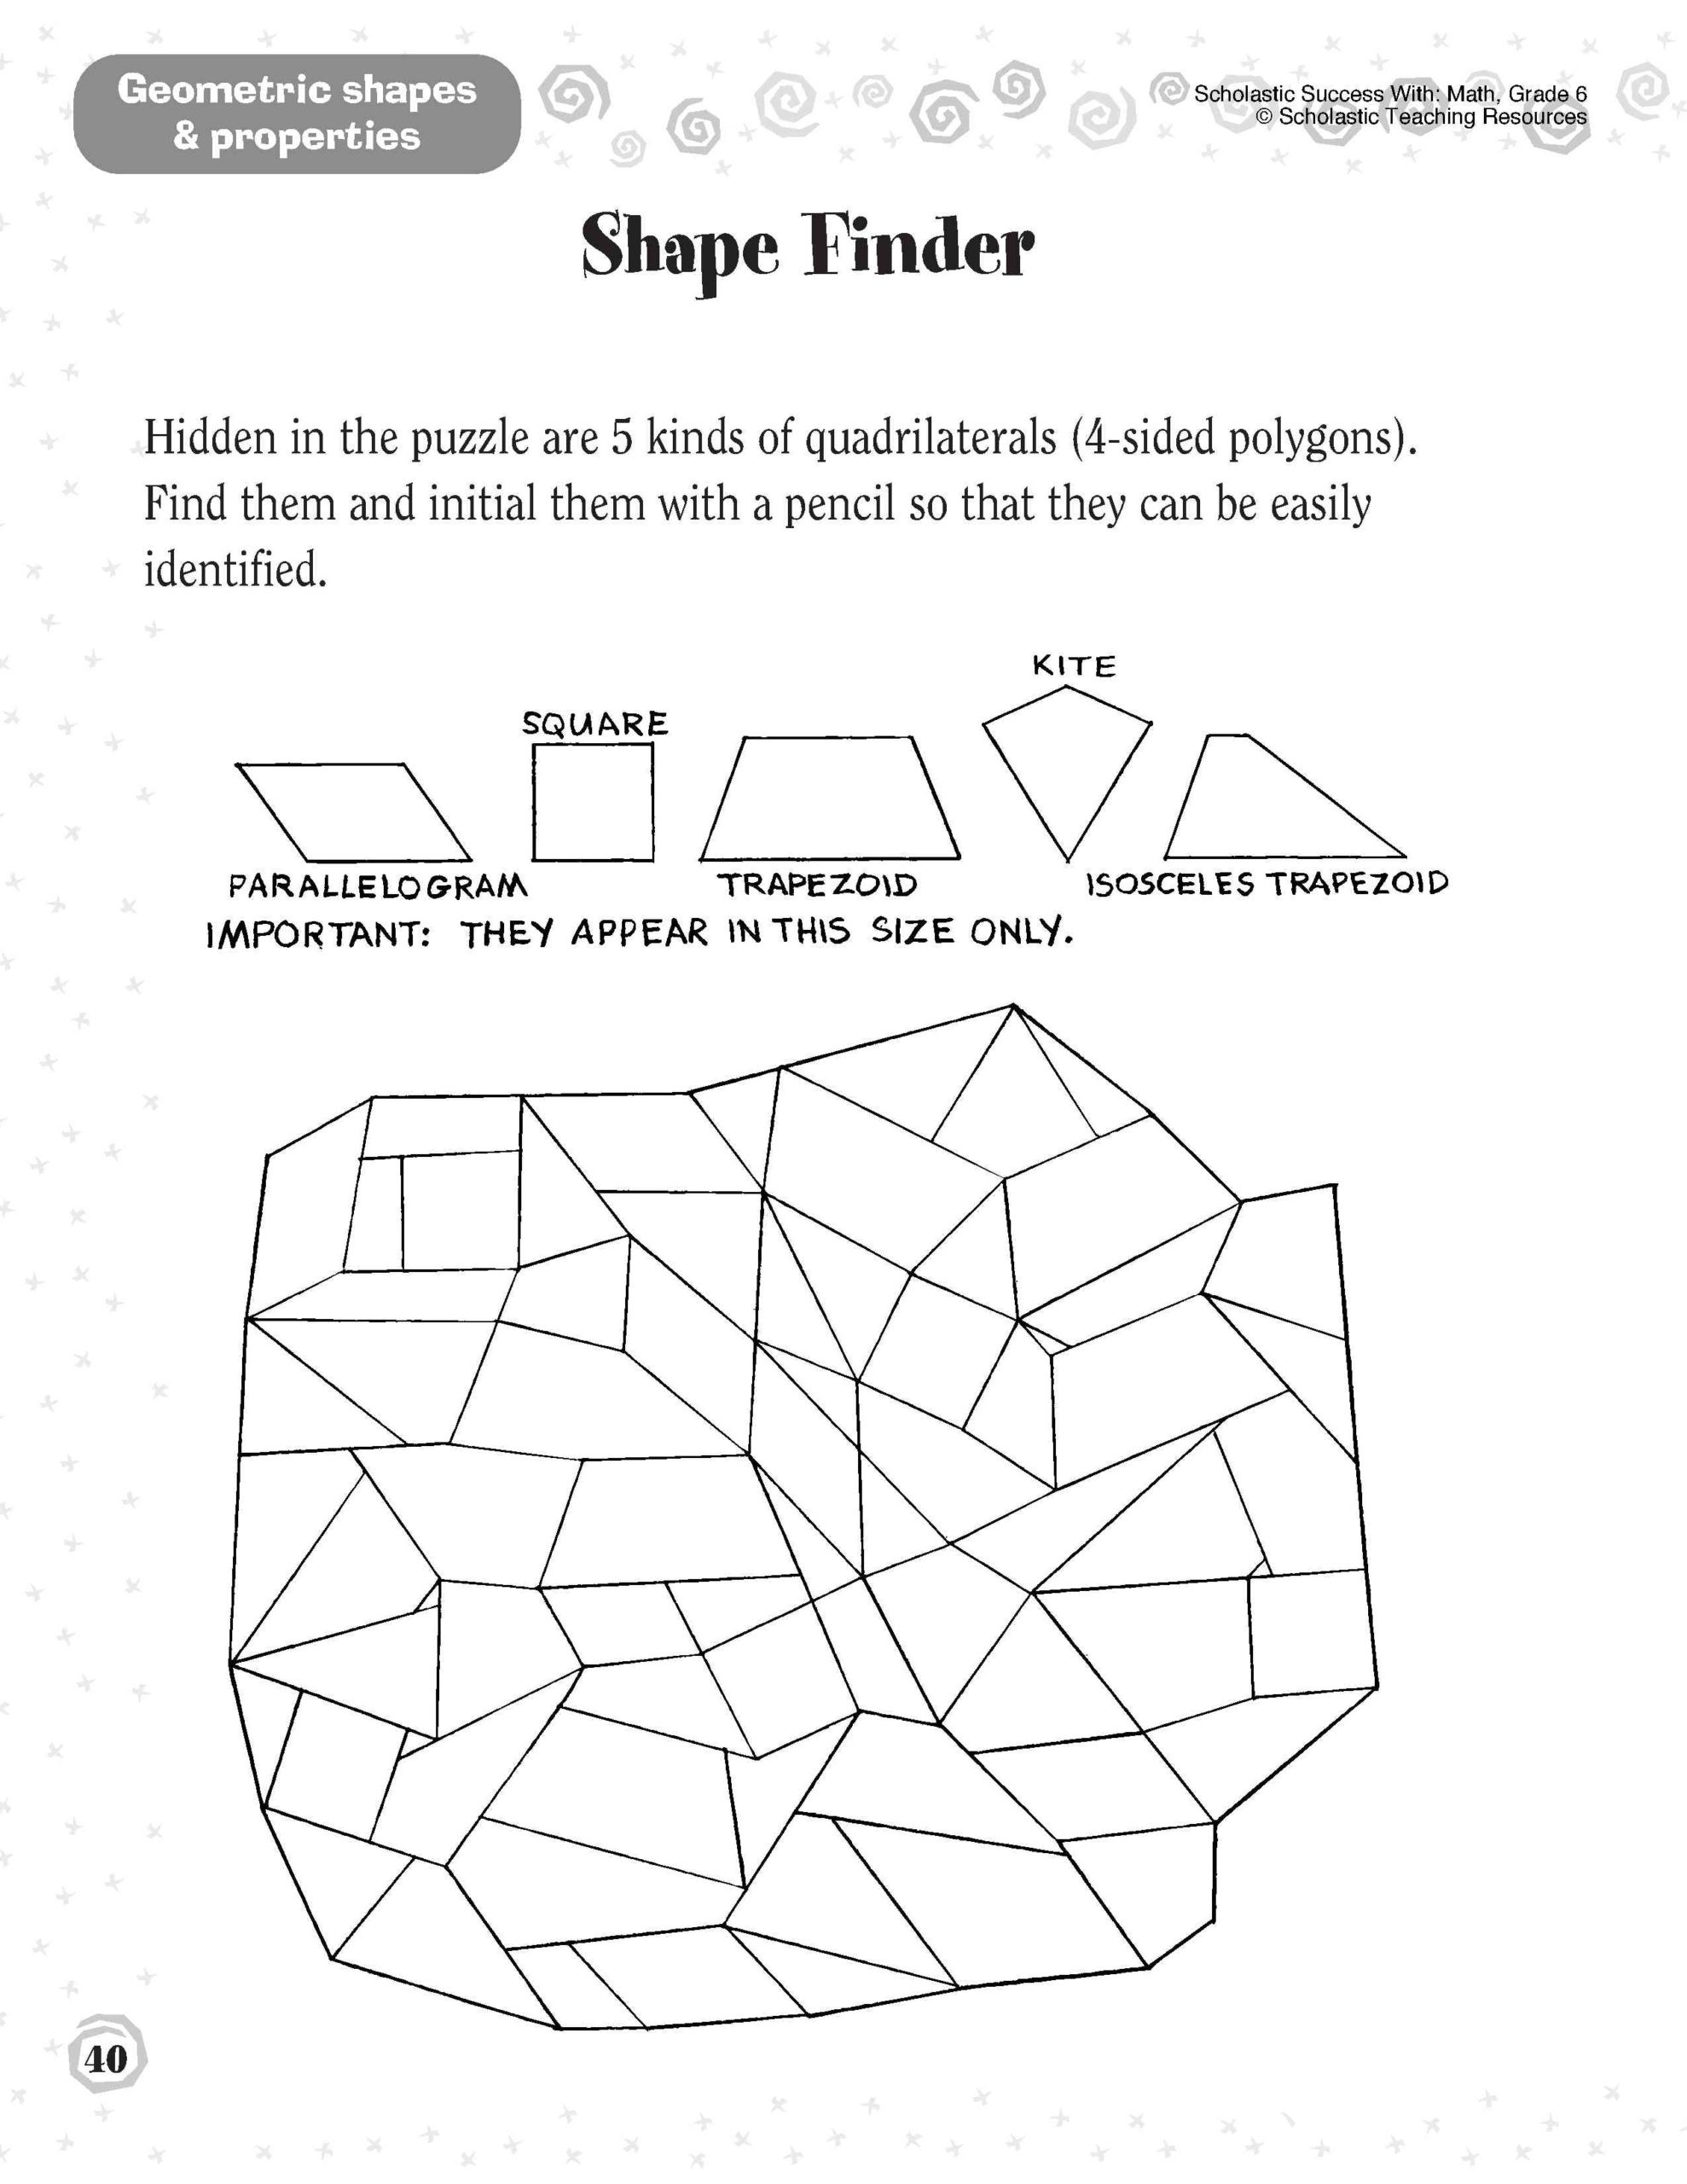 Geometric Shapes Worksheets 2nd Grade Math Worksheet Staggering Math Activities for 2nd Grade